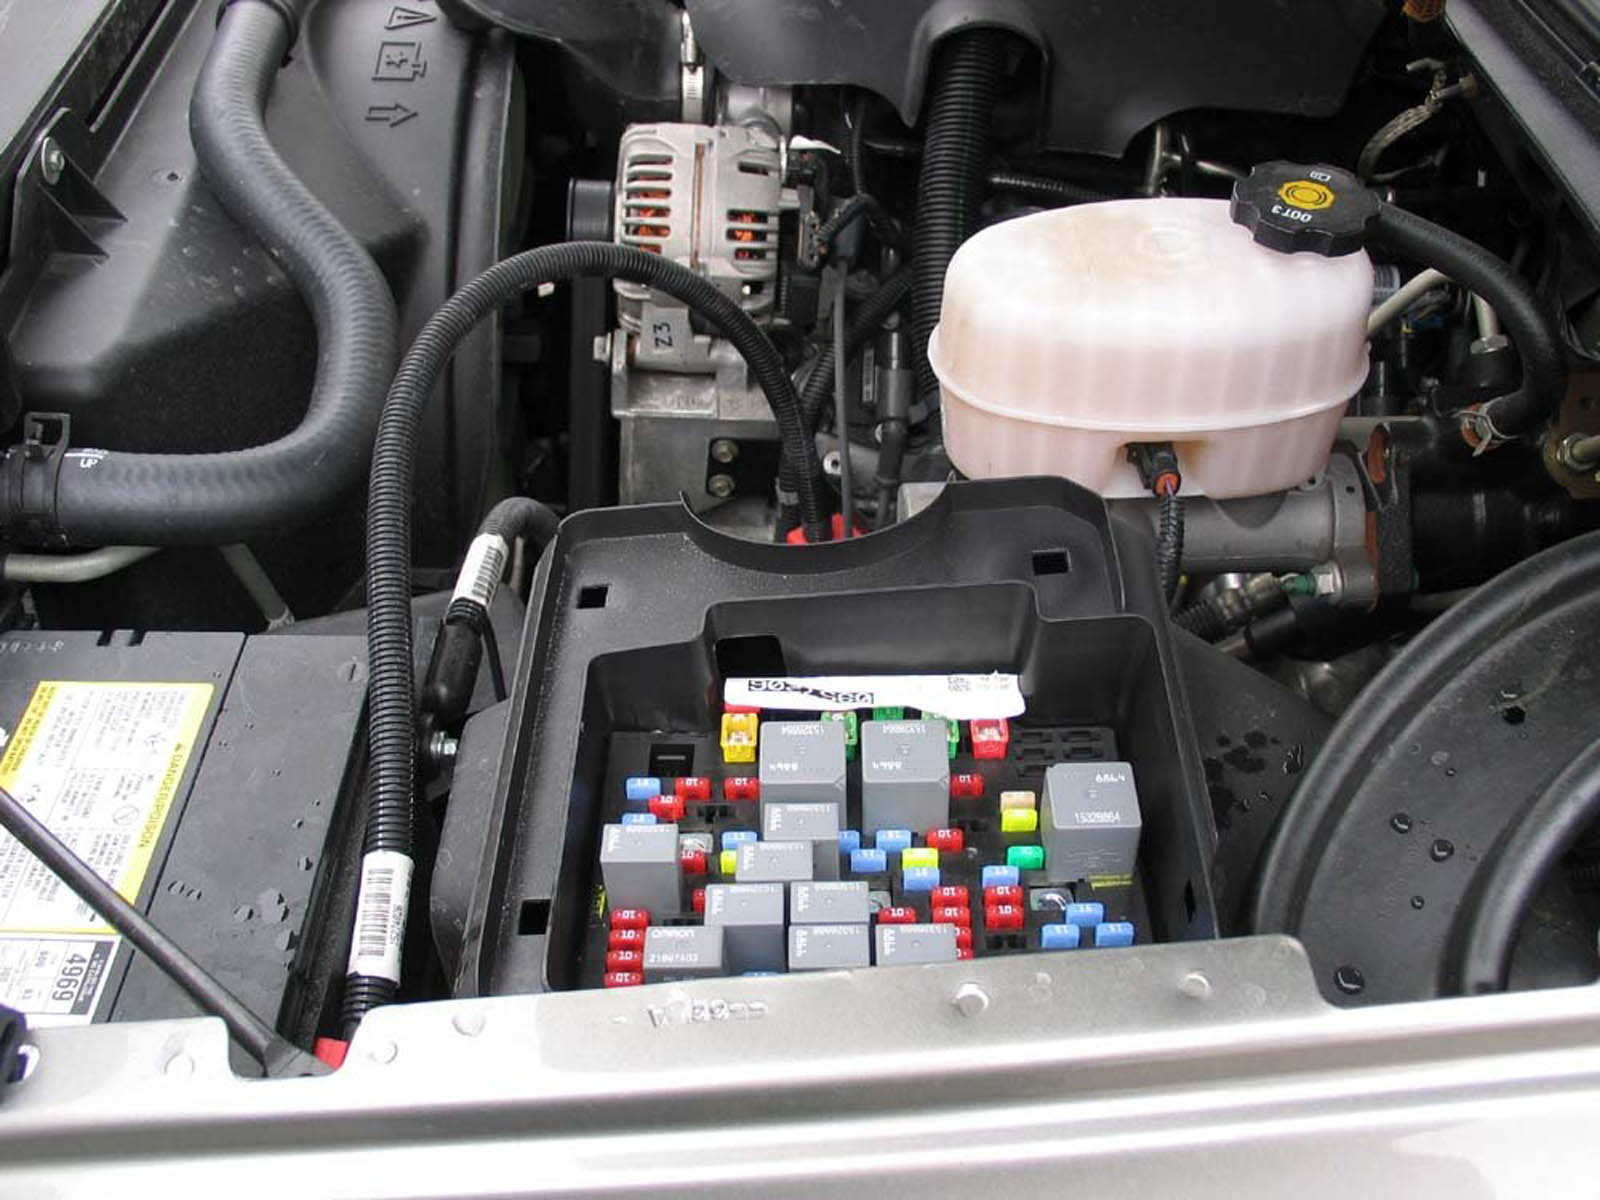 MMMay 27 Fuse Box 04 69845 chevrolet silverado gmt800 1999 2006 fuse box diagram chevroletforum 2004 colorado fuse box location at alyssarenee.co